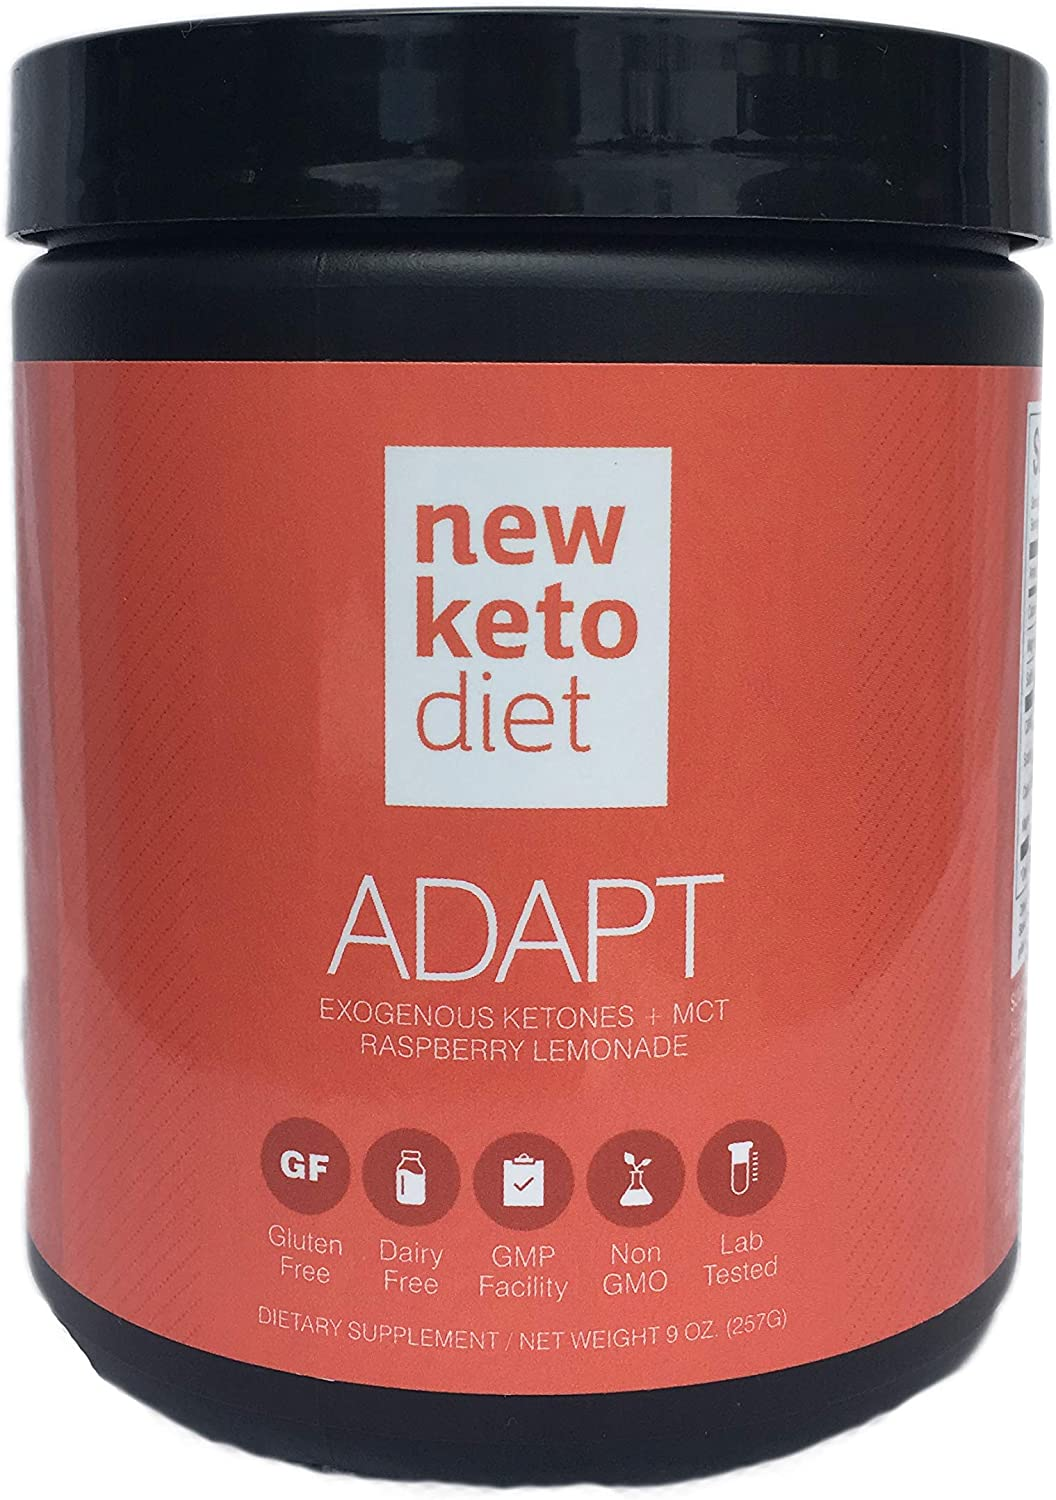 New Keto Diet Adapt- Achieve Ketosis Effortlessly, Sustainable Fat Loss, Increased Energy and Mental Clarity – Patented Exogenous Ketones Blend